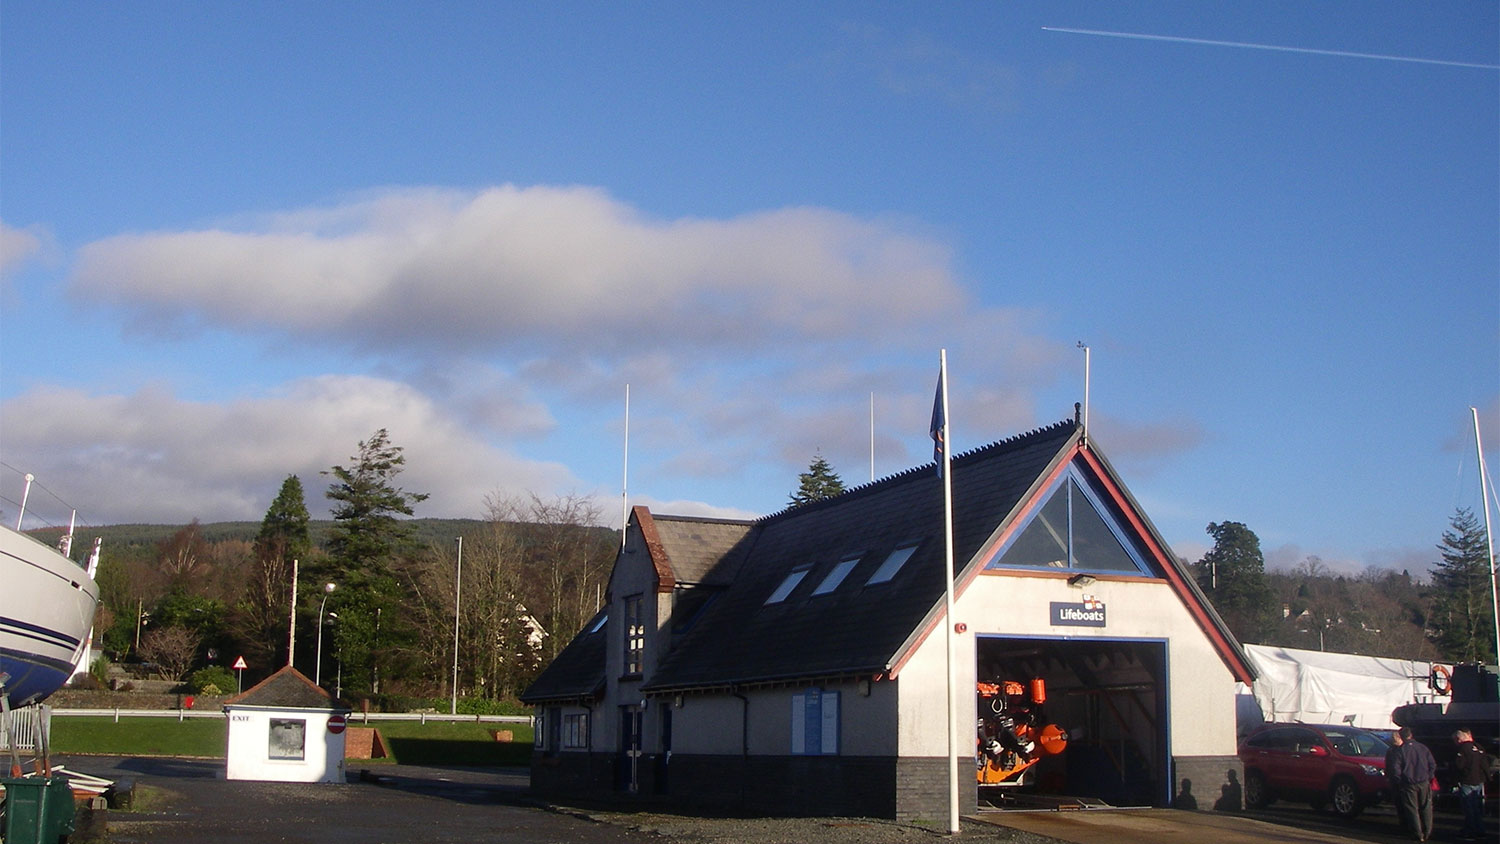 RNLI Helensburgh Lifeboat Station